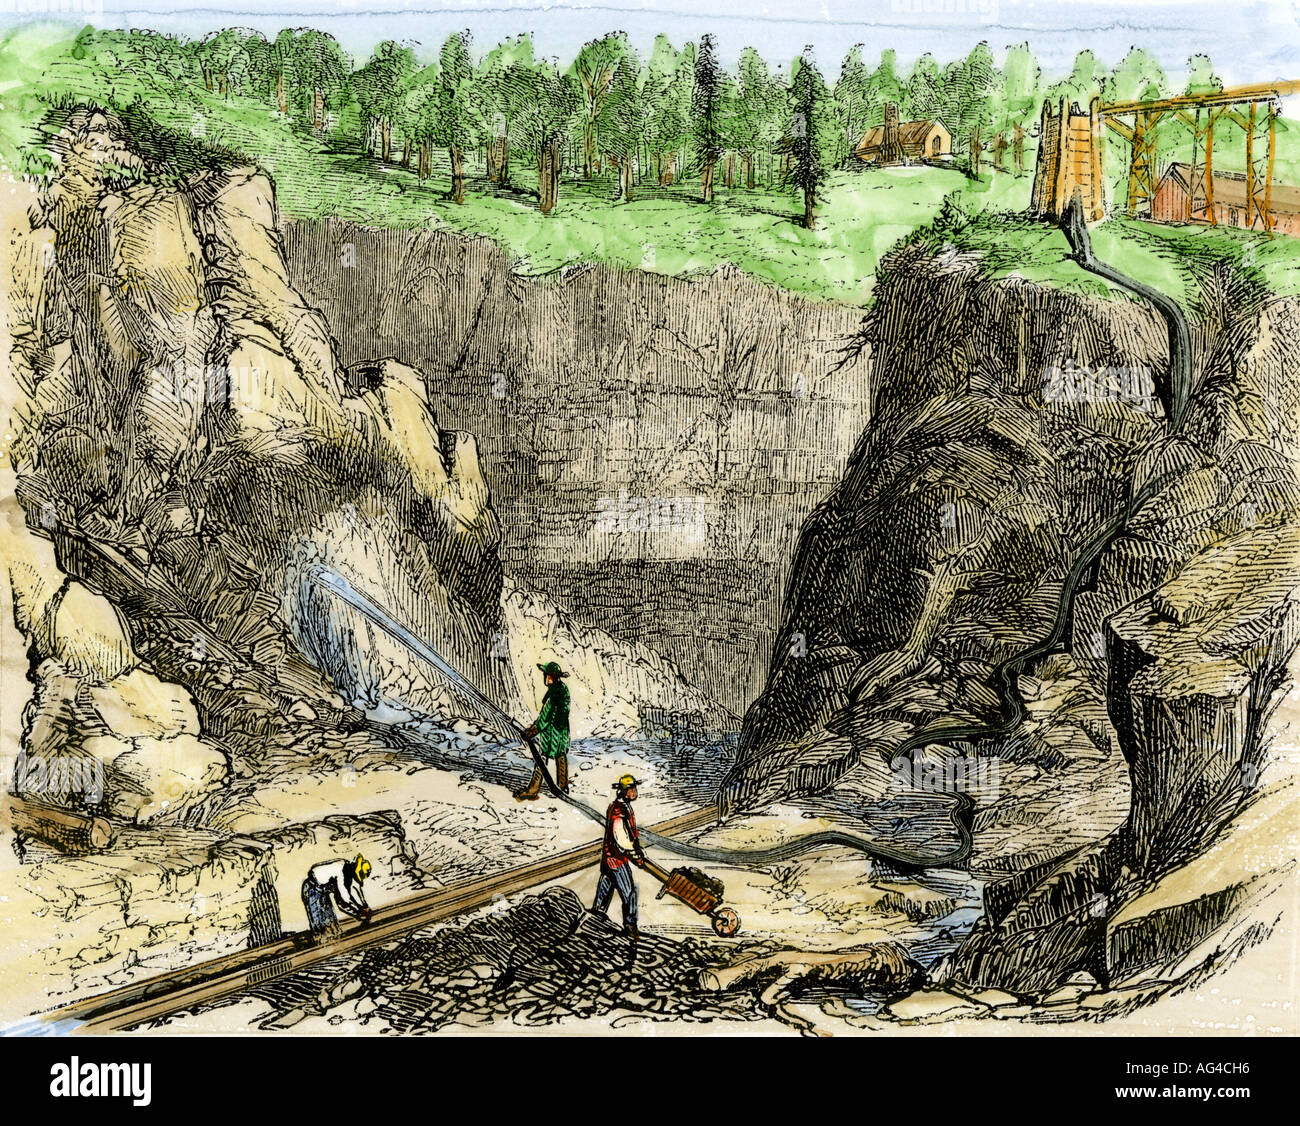 Hydraulic mining at French Corral during the California Gold Rush 1850s. Hand-colored woodcut - Stock Image